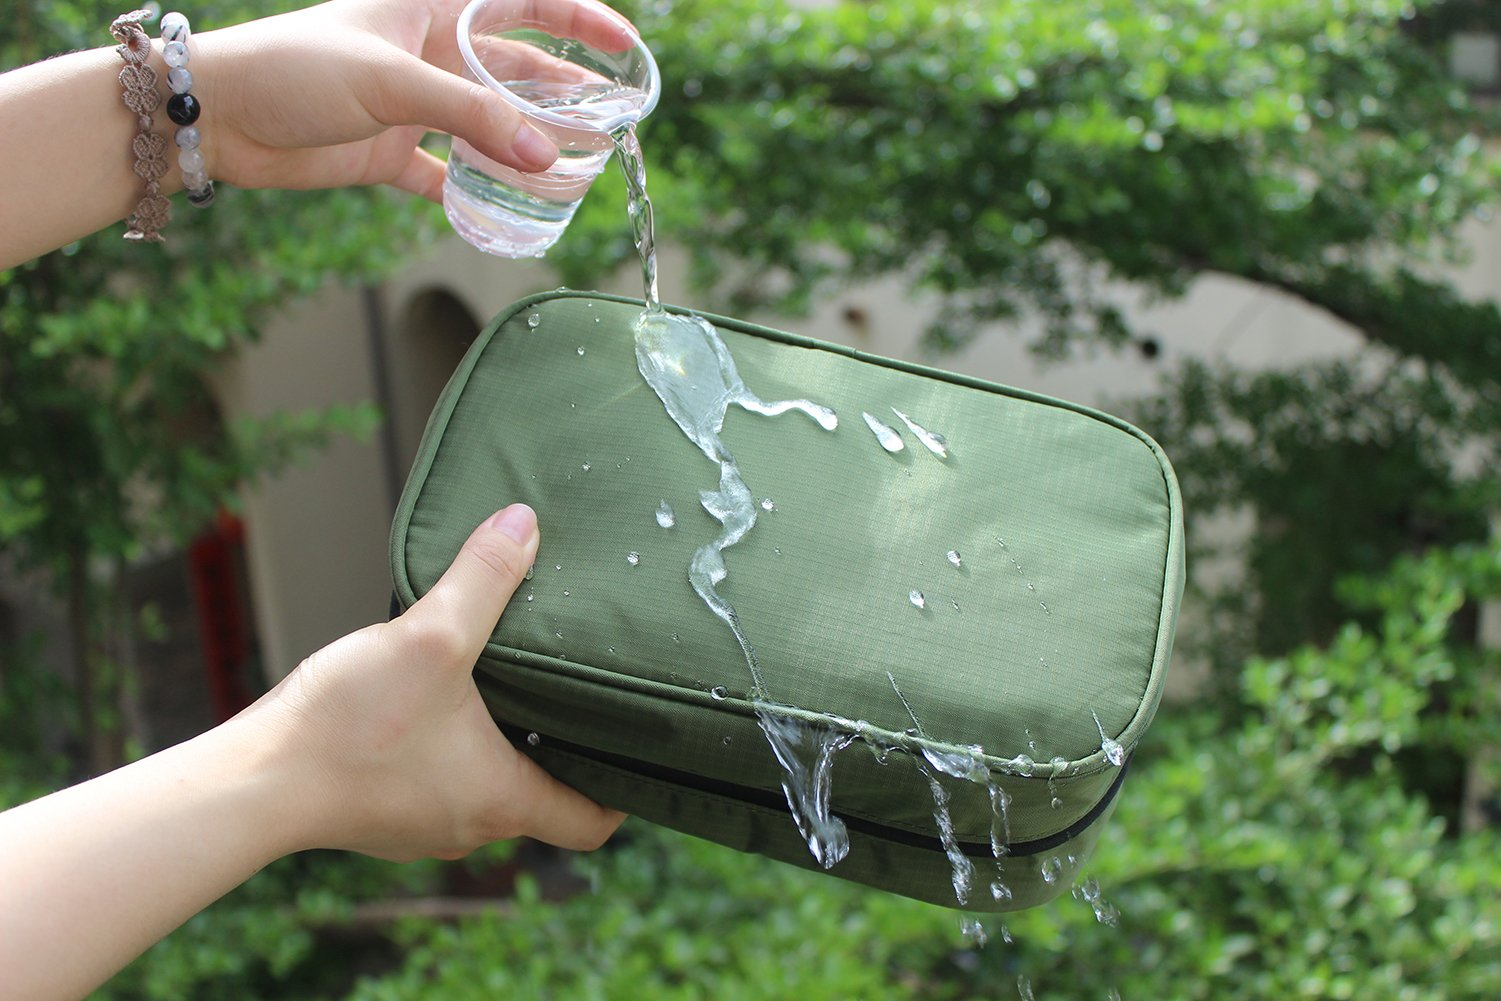 Dopobo Travelling Toiletry Bag Portable Hanging Water-Resistant Wash Bag for Travelling, Business Trip, Camping (army green) by Dopobo (Image #5)